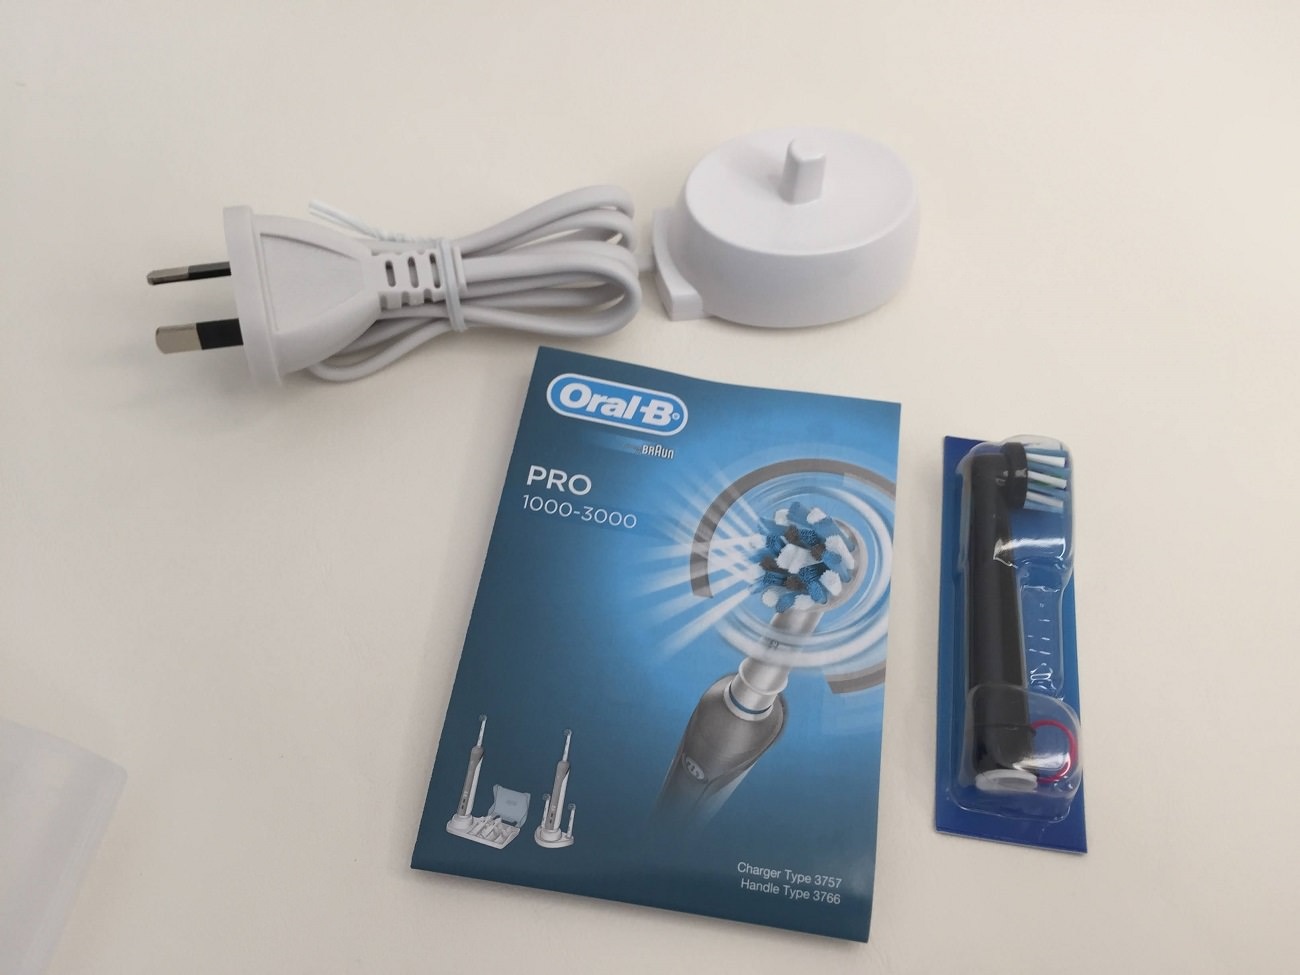 Oral-B Pro 2000 charger and instruction manual and brush head